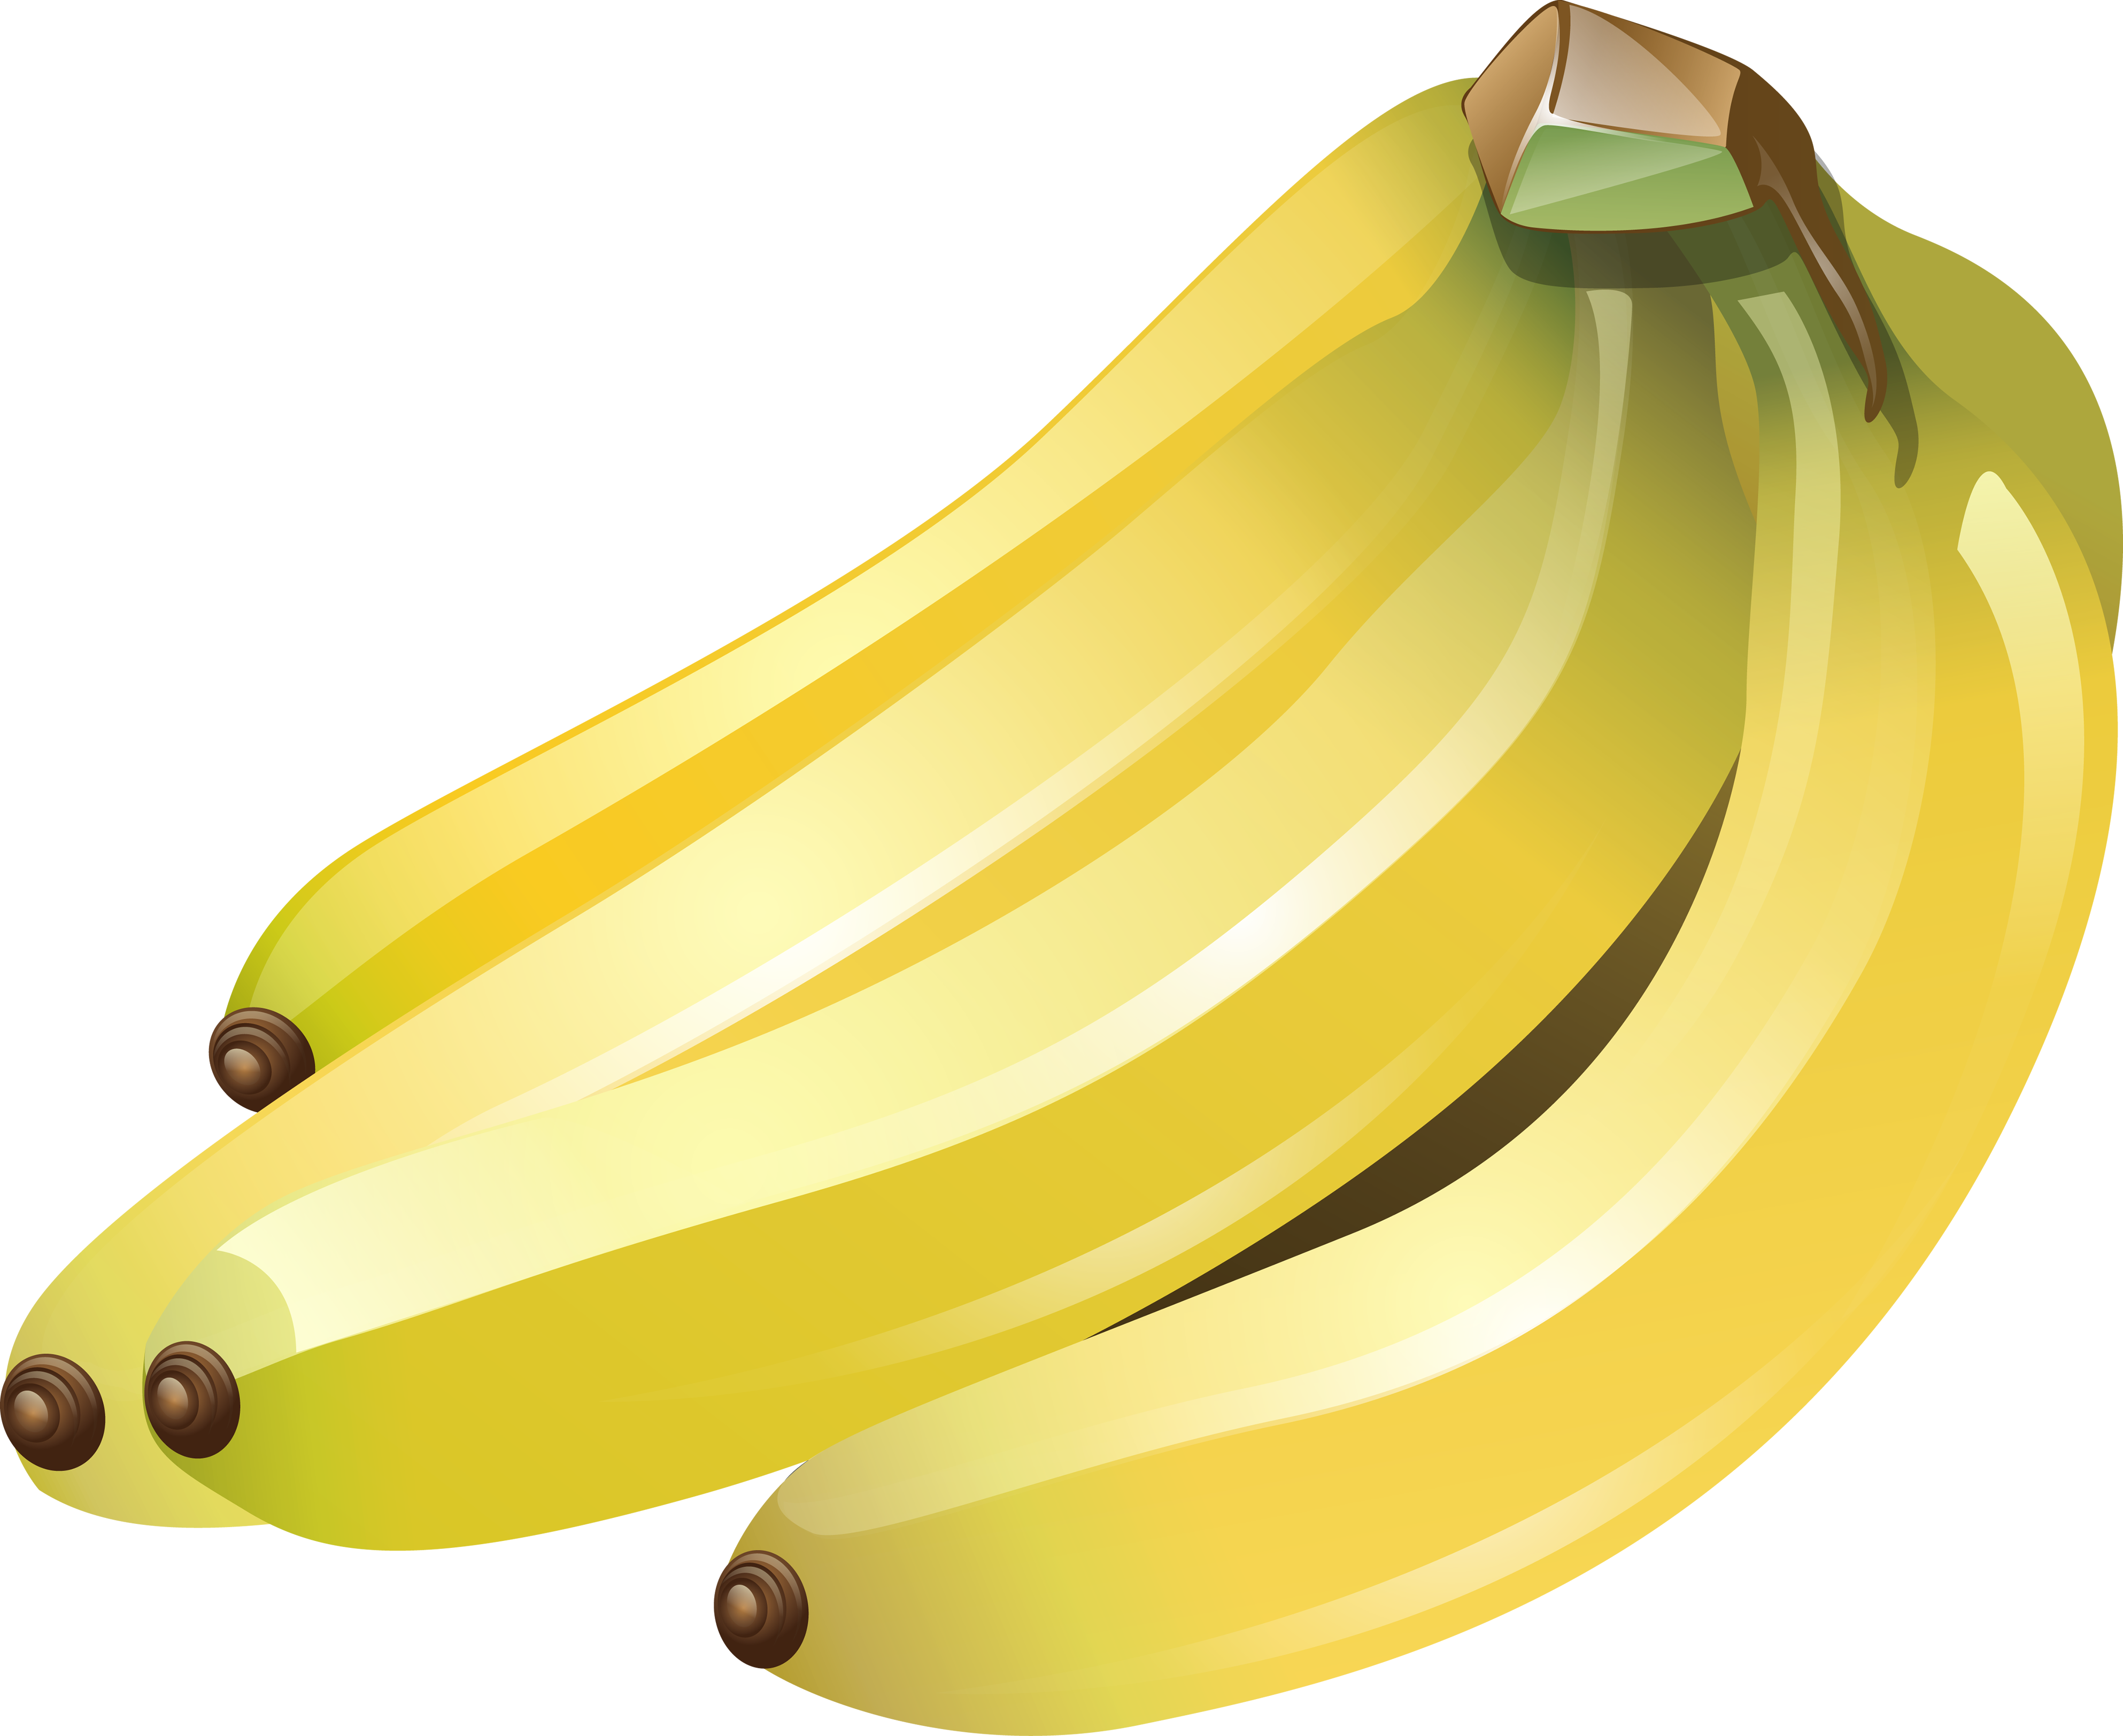 Png image purepng free. Clipart banana high quality